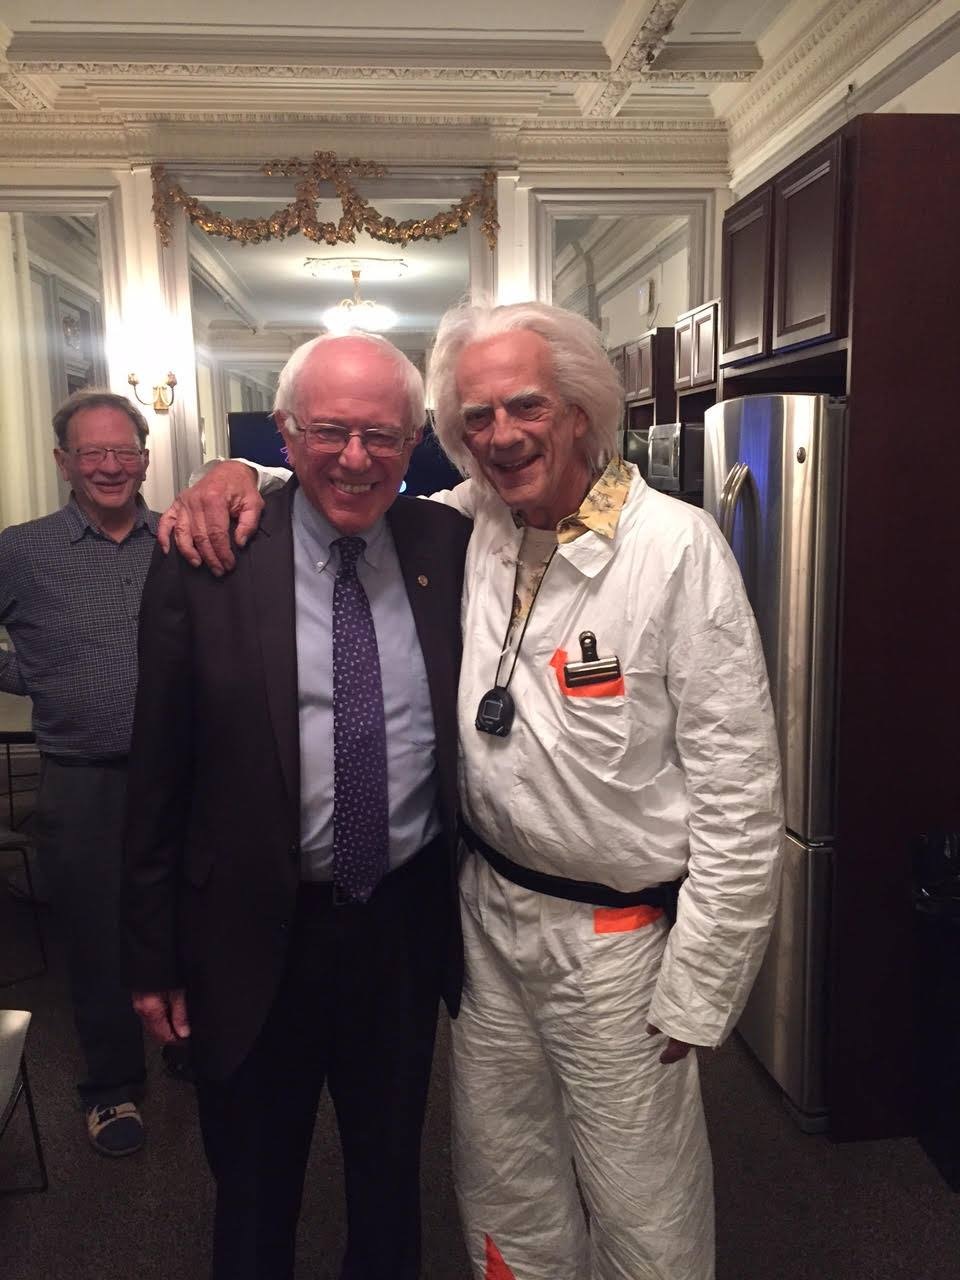 Bernie Sanders with Christopher Lloyd,  Doc Watson  from Back to the Future on Oct. 21, 2015.